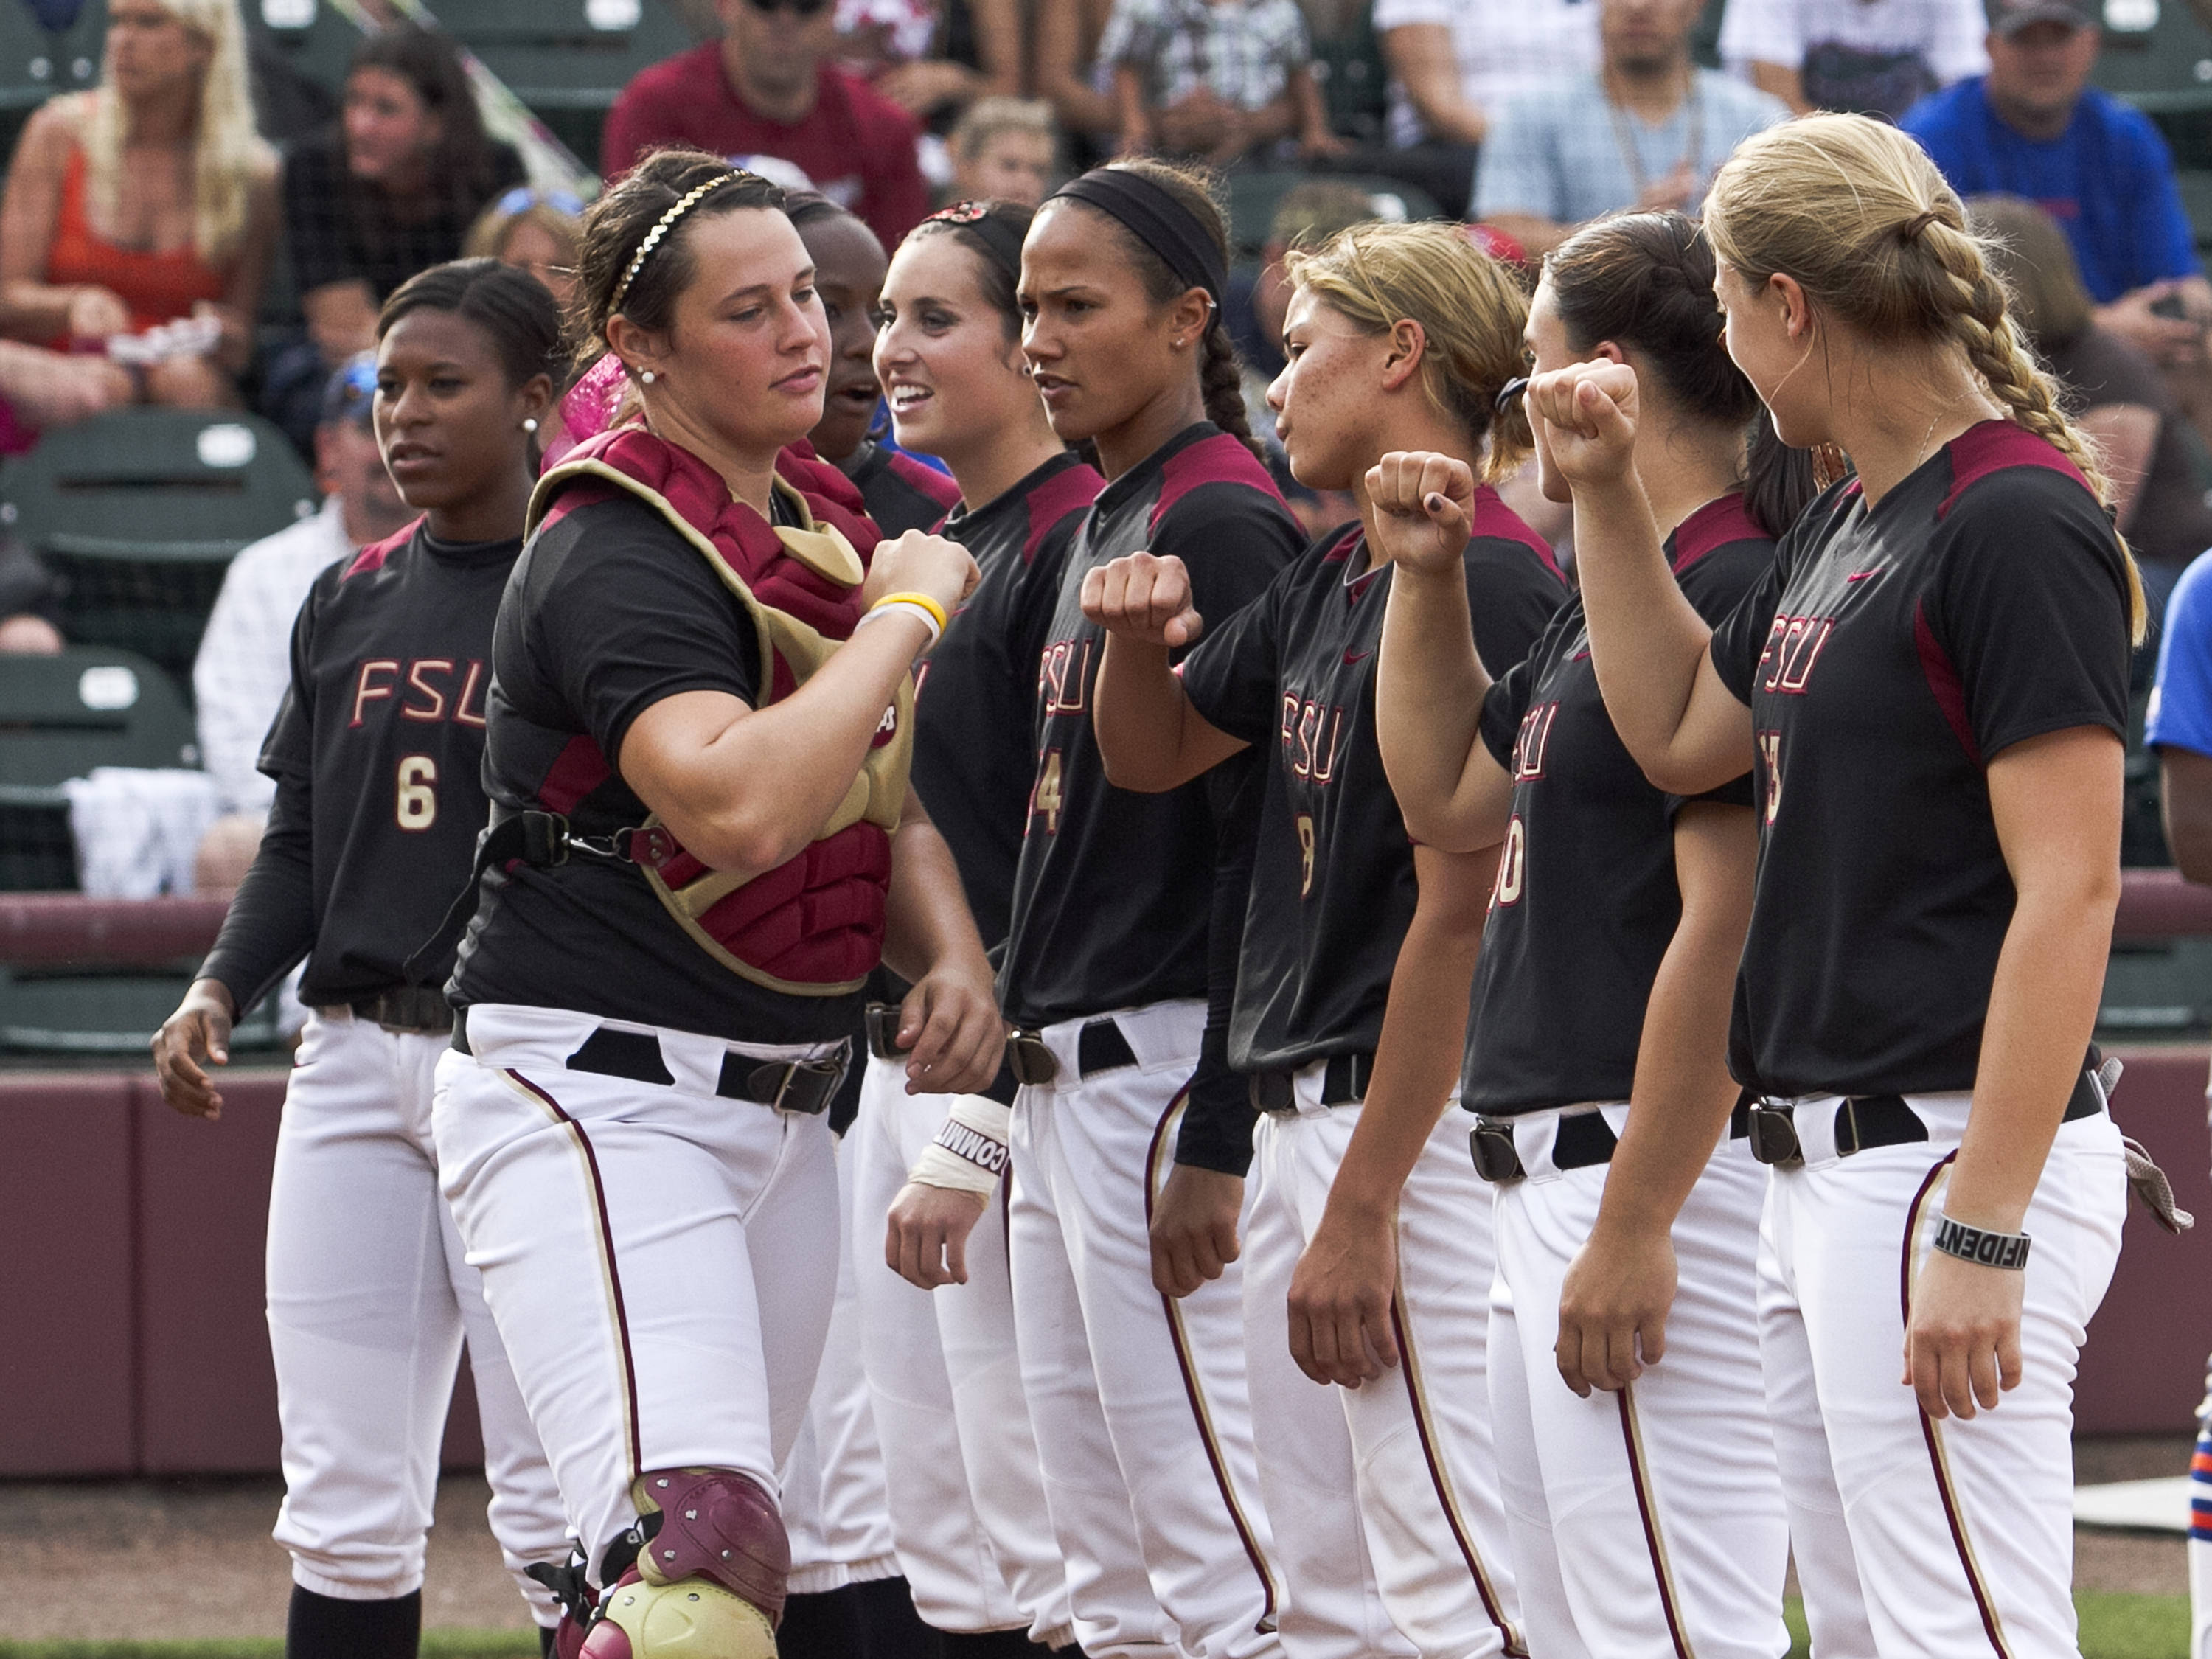 FSU pre-game introductions, FSU Softball vs FLA  04/02/2012